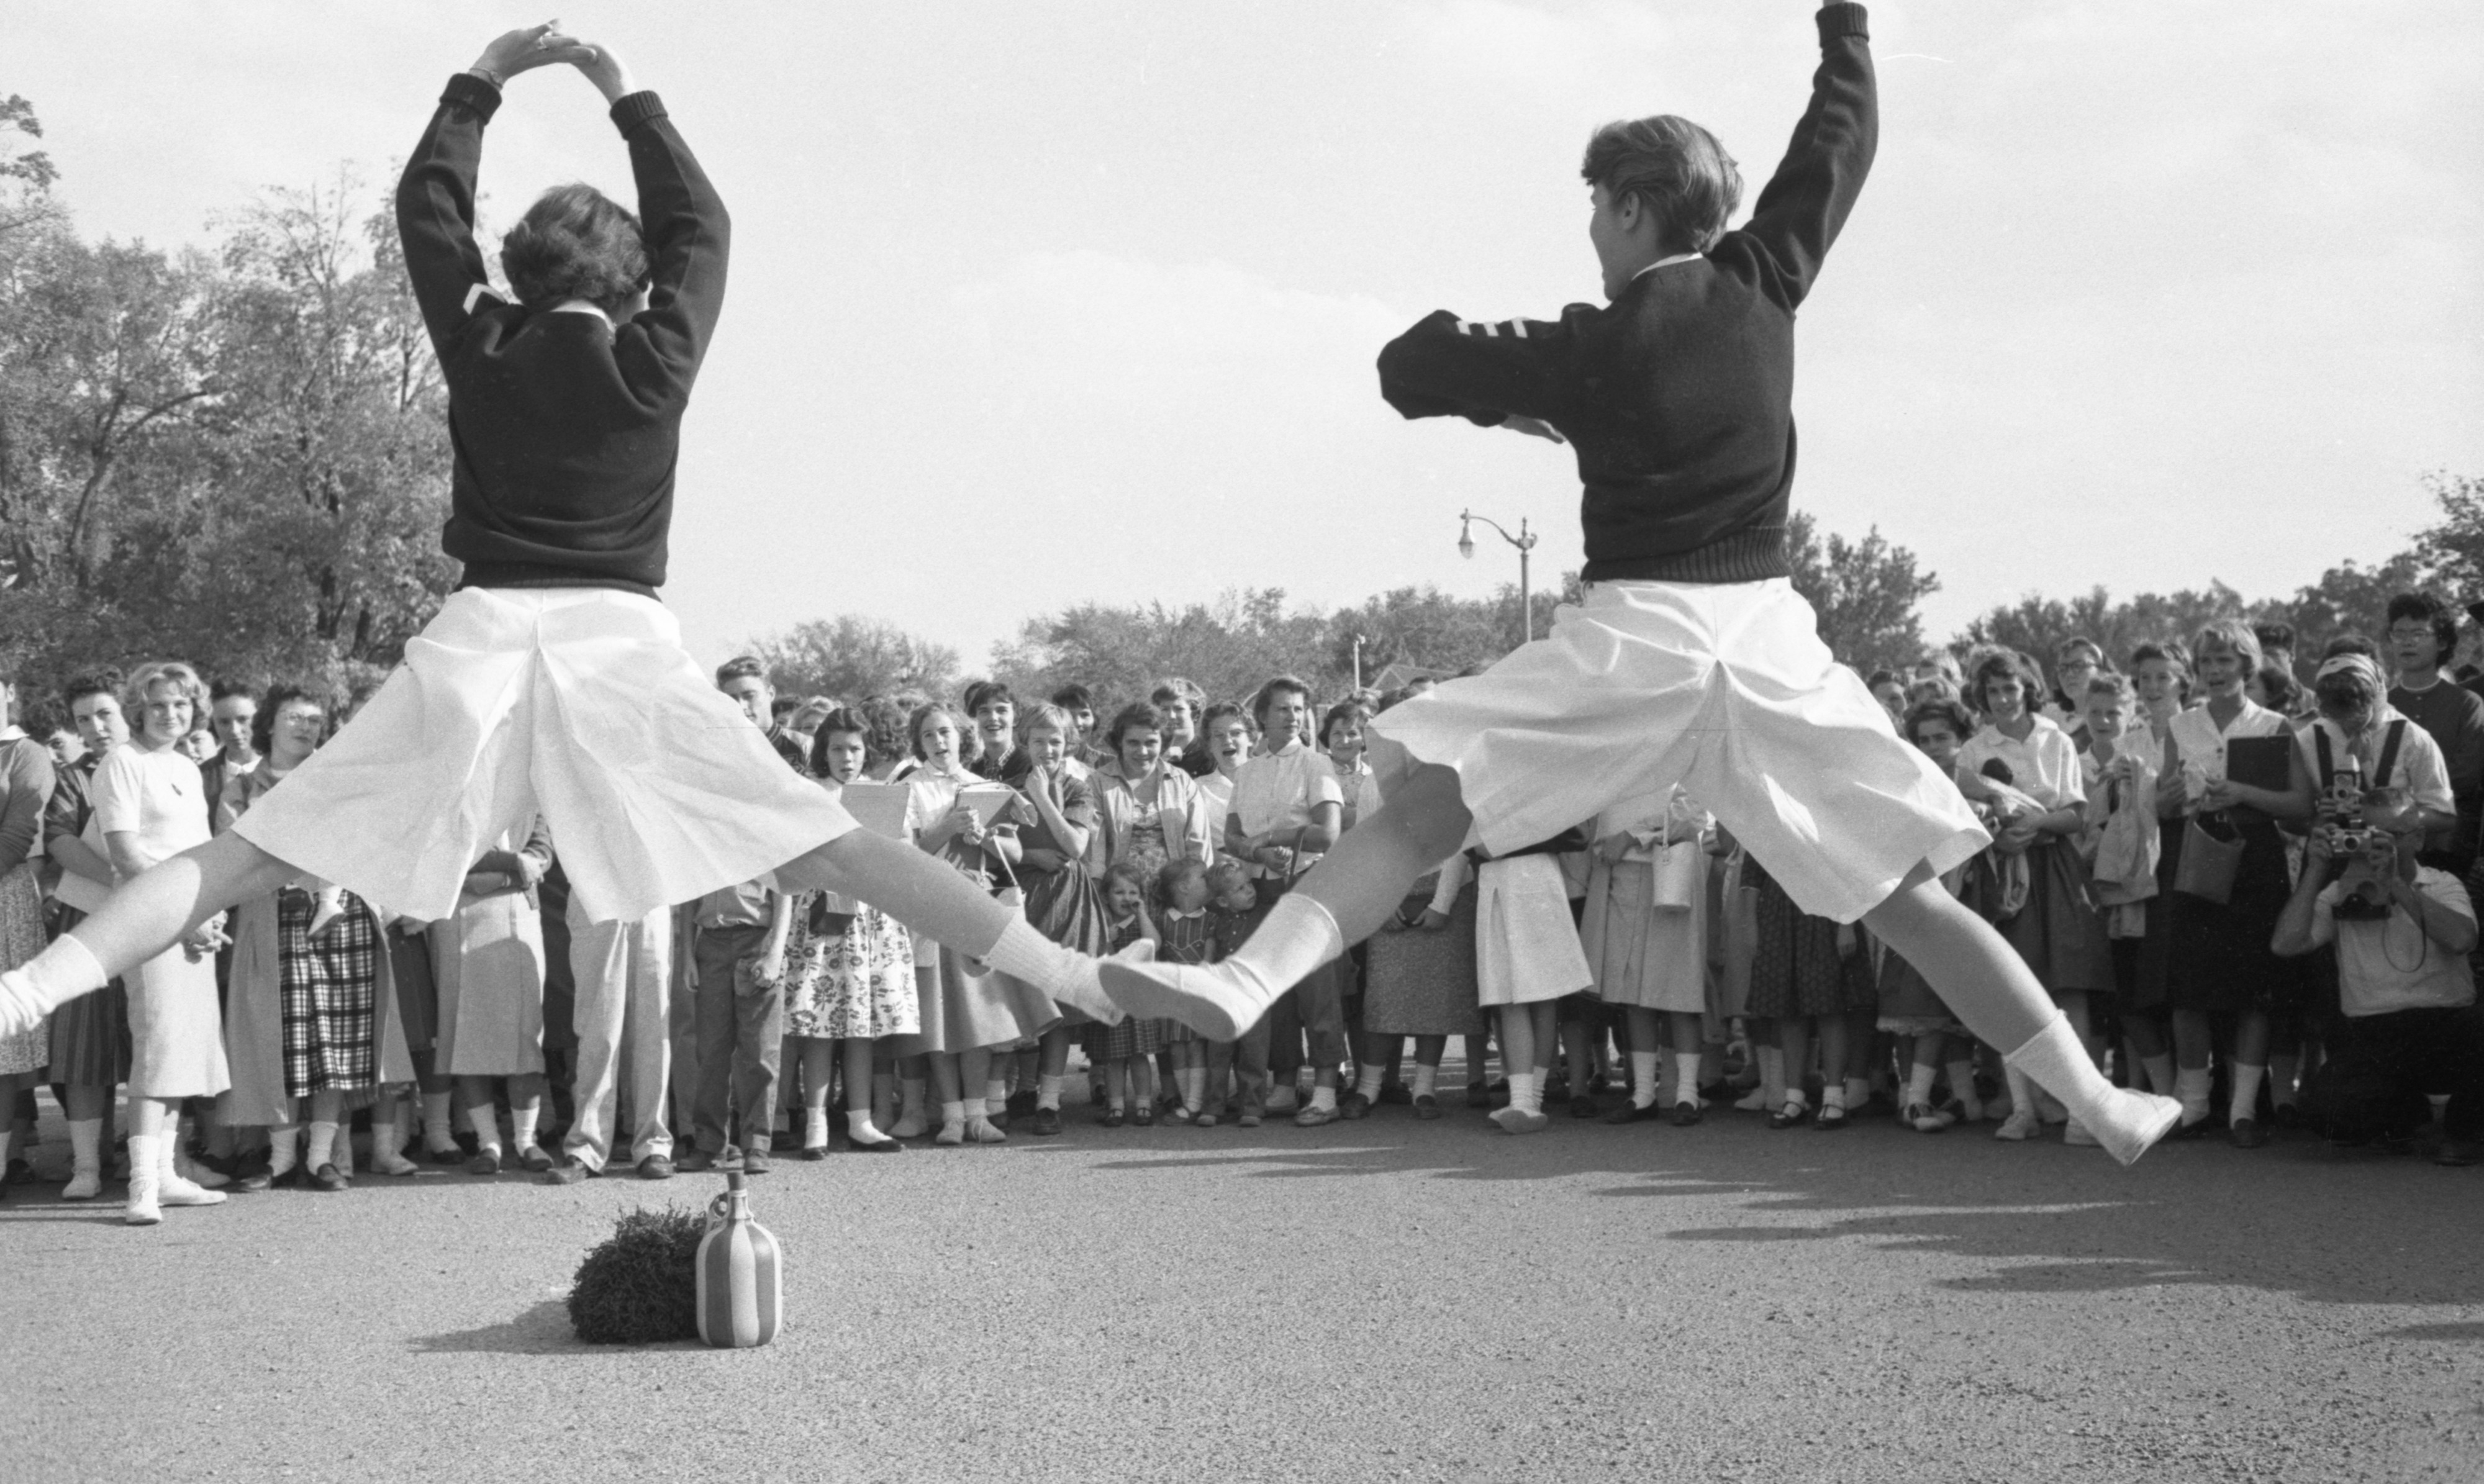 Cheerleaders Perform For A Crowd At The Dexter High School Homecoming Parade, October 1959 image